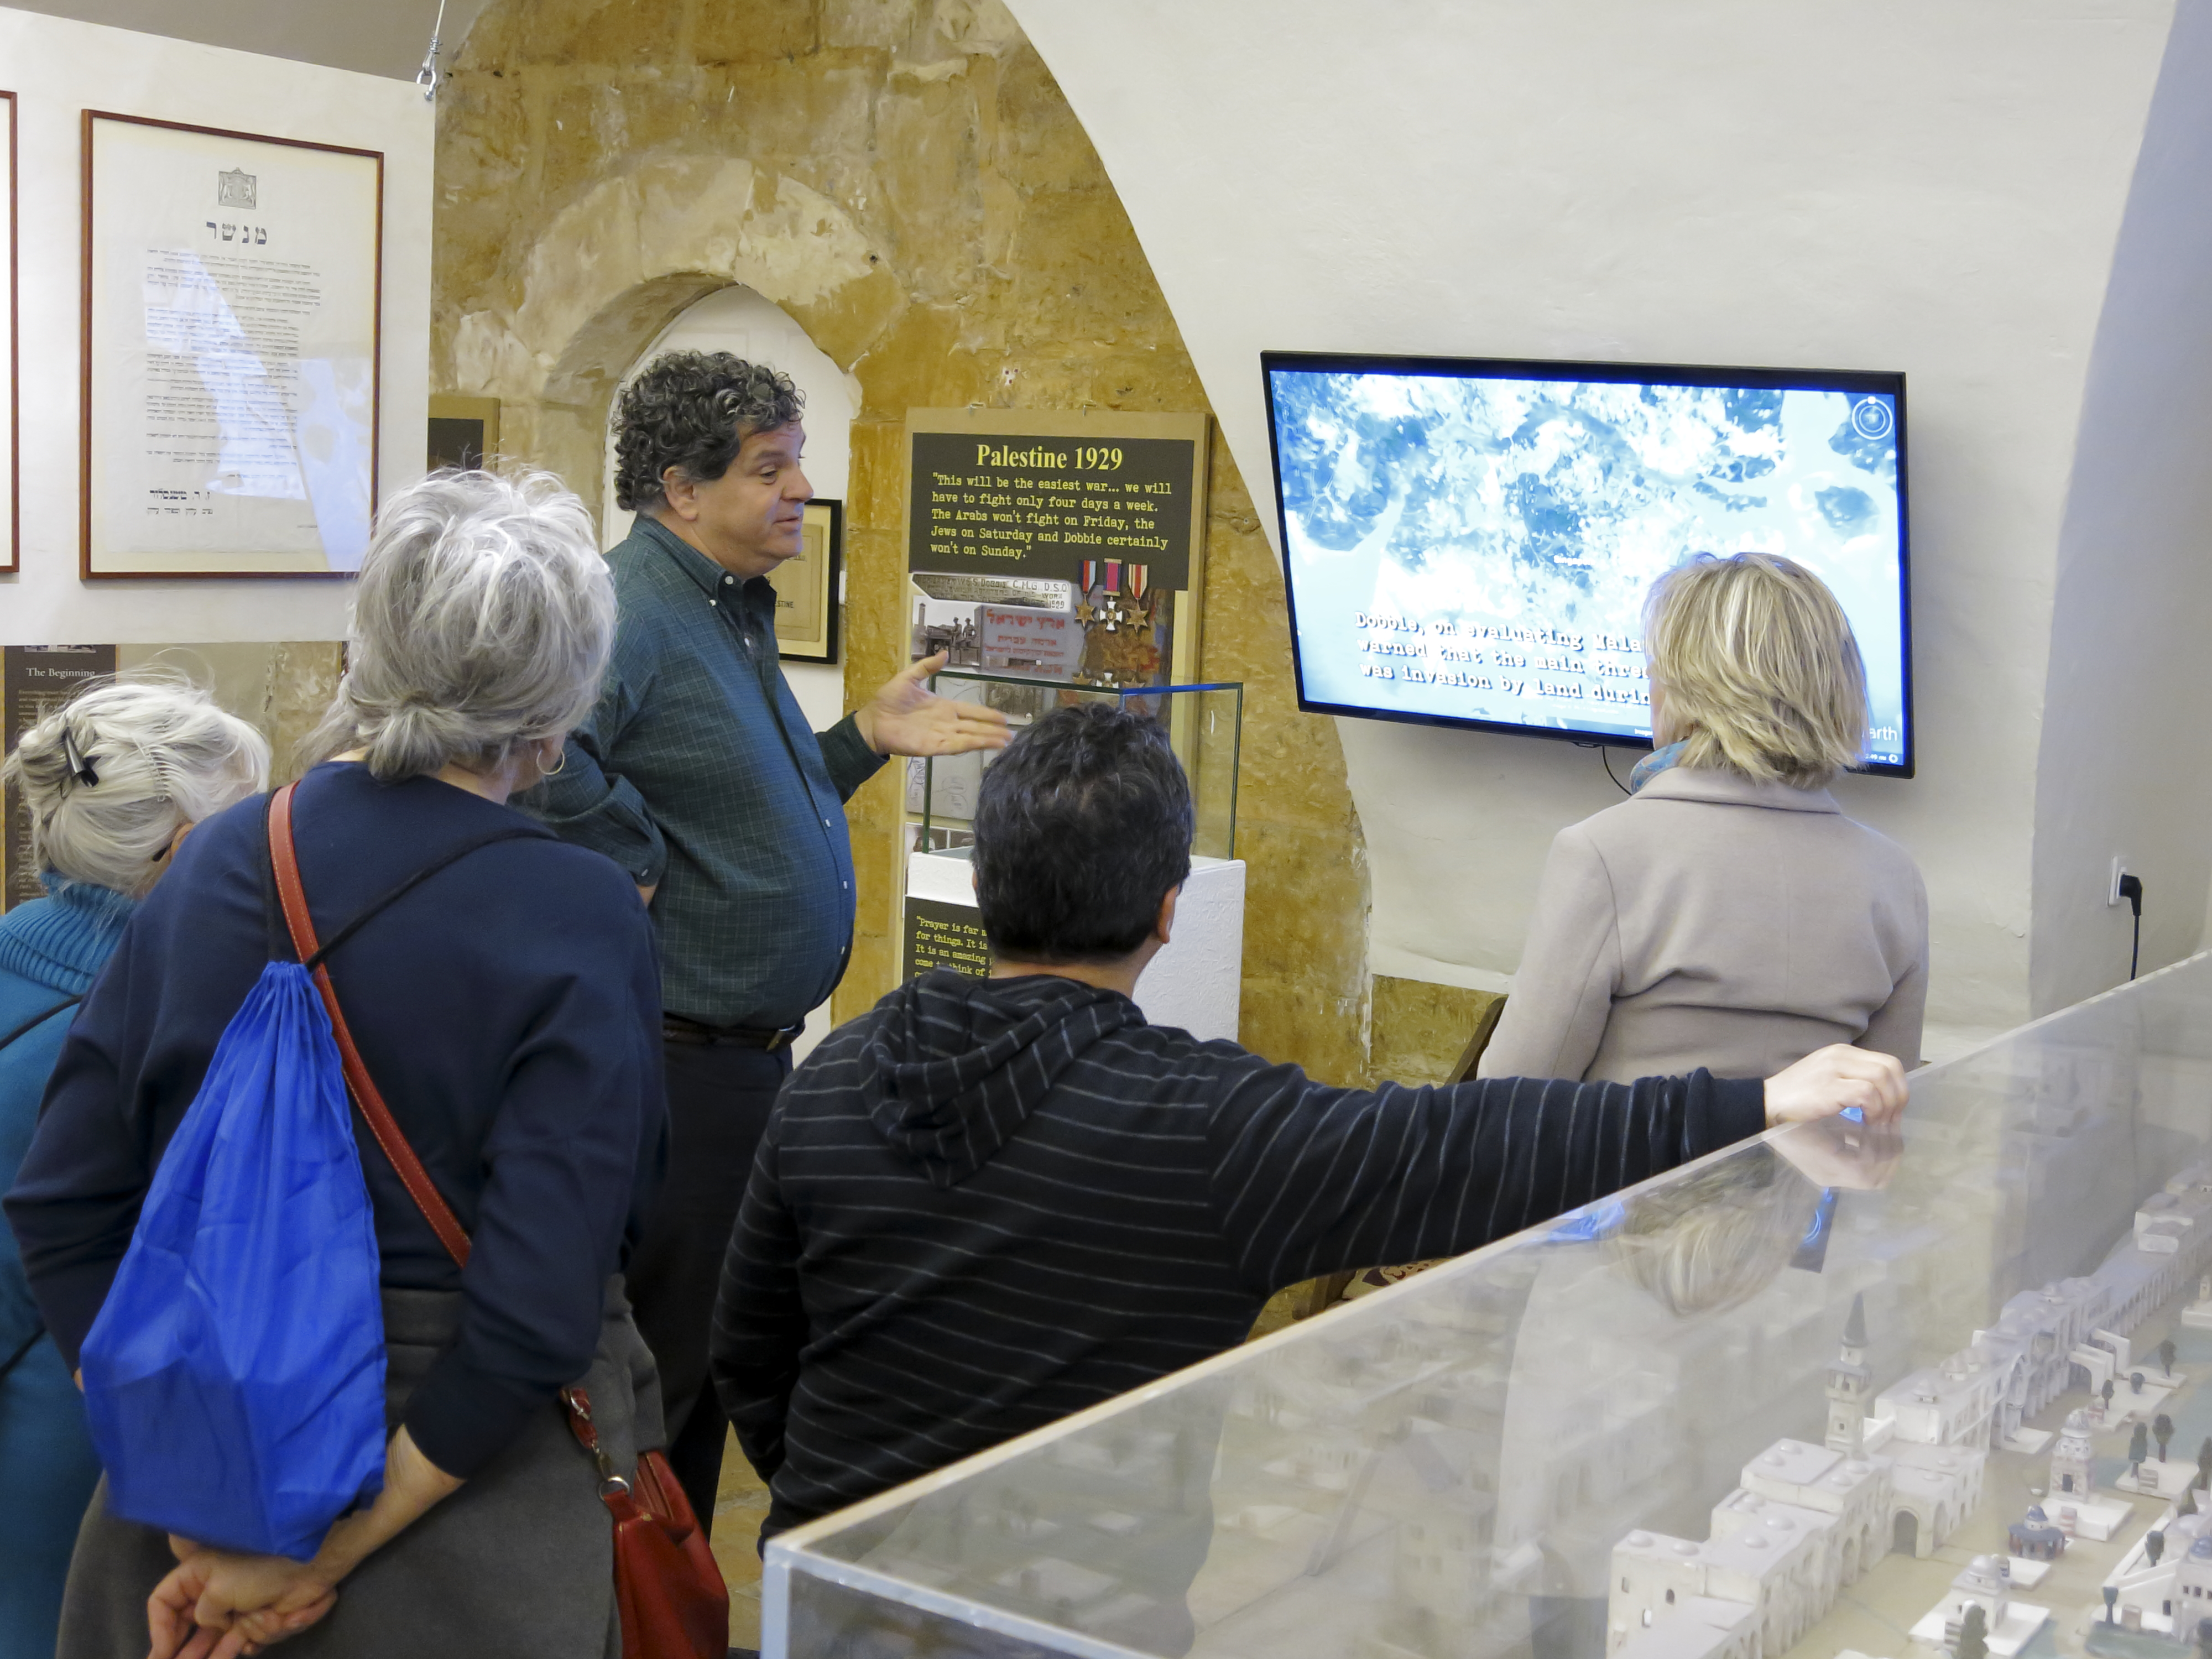 Personal and interactive tours are available